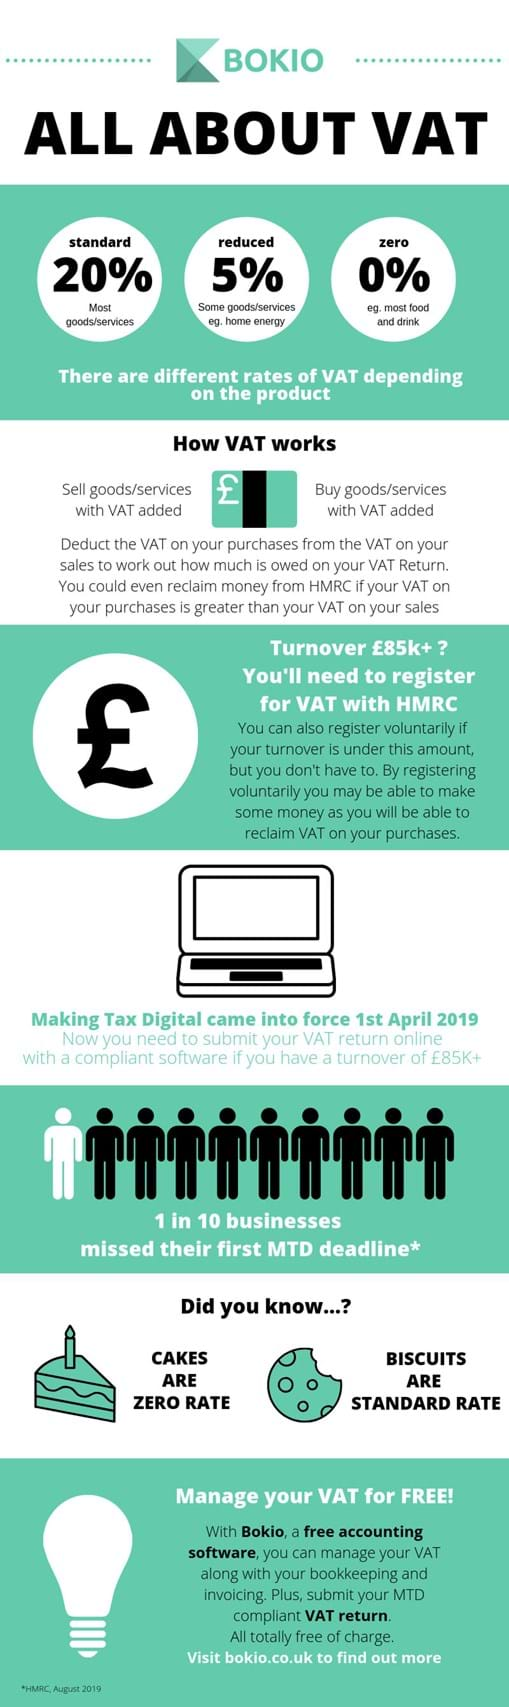 all about VAT